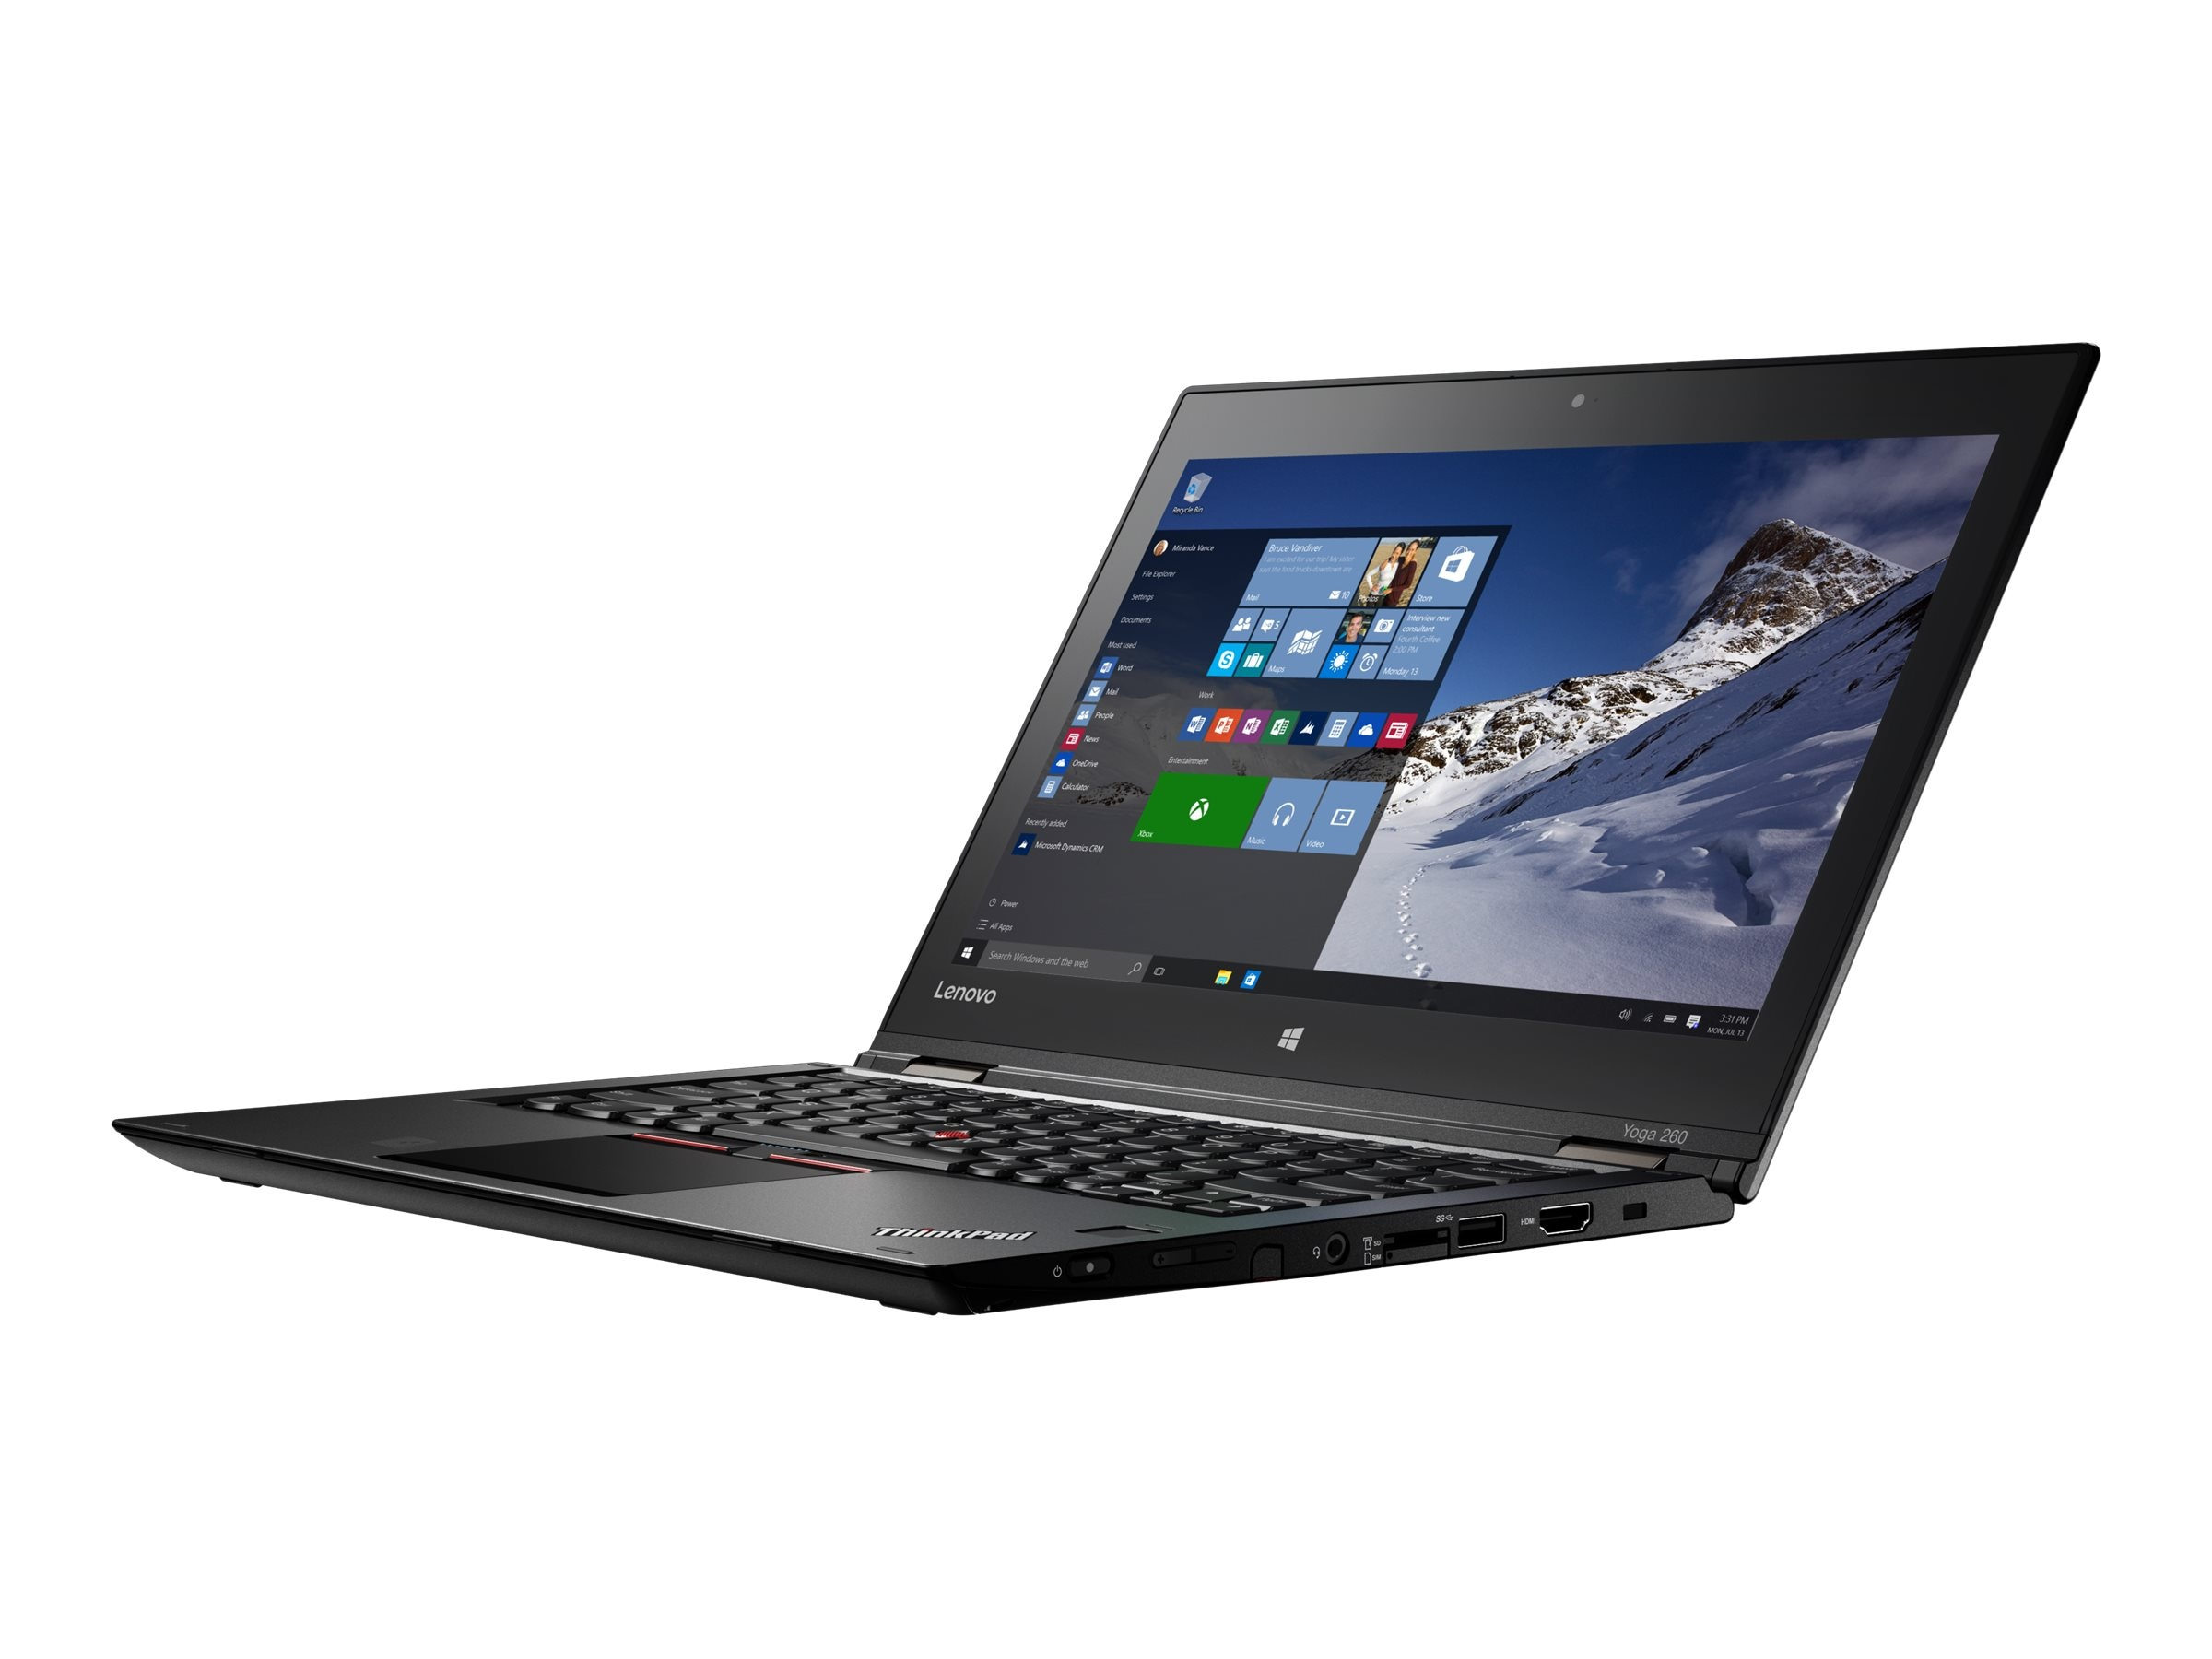 Lenovo TopSeller ThinkPad Yoga 260 Core i7-6500U 2.5GHz 8GB 256GB OPAL2 ac BT WC Pen 4C 12.5 FHD MT W10P64, 20GS0002US